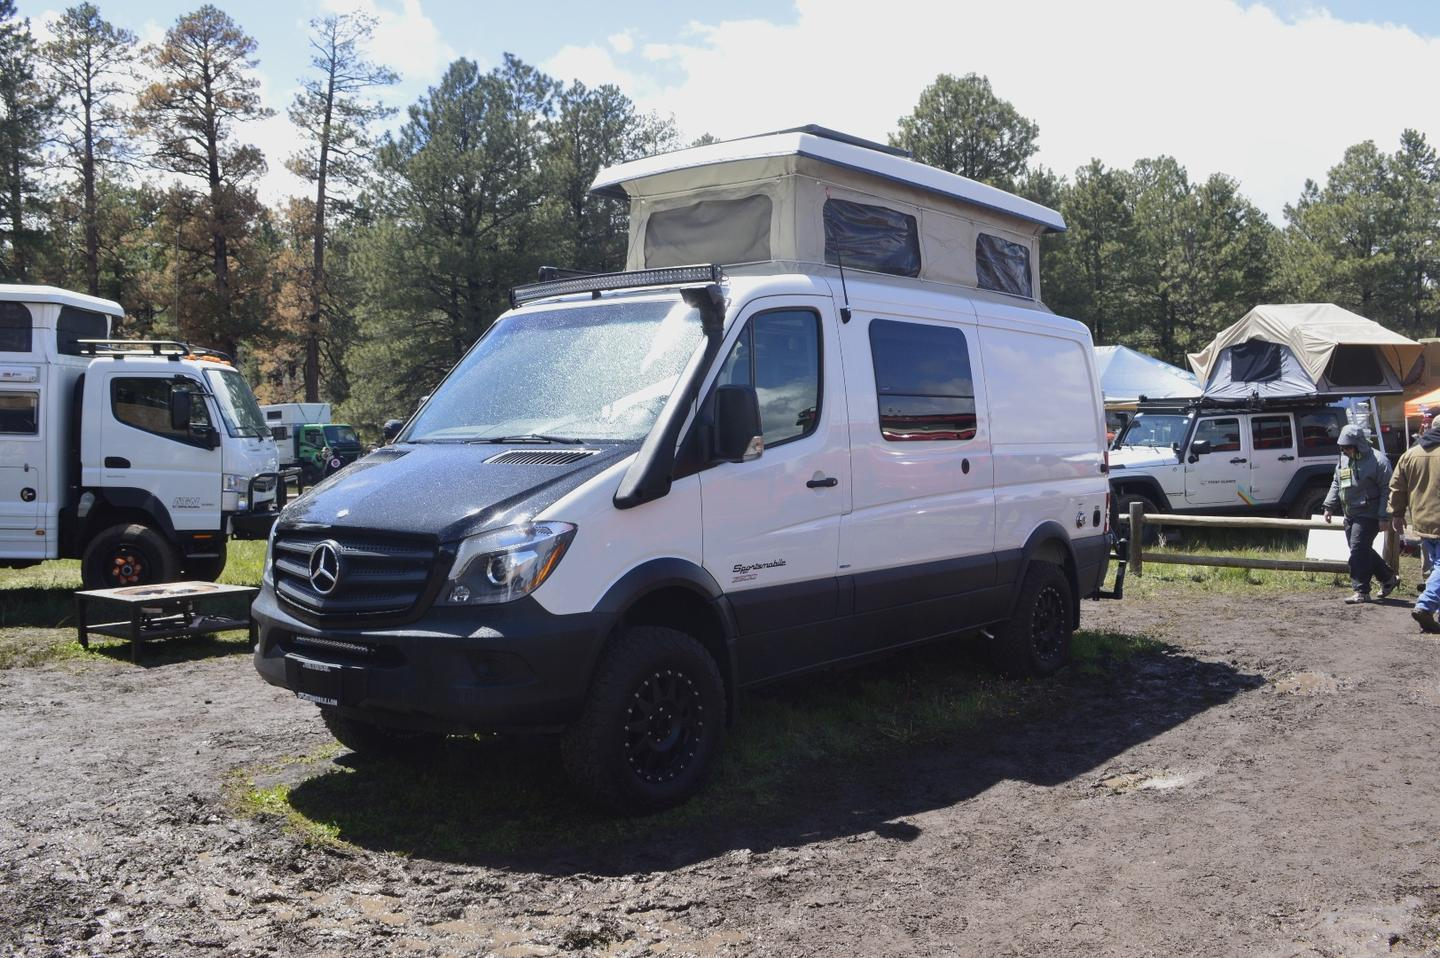 The Sportsmobile Sprinter 4x4 at Overland Expo West 2015